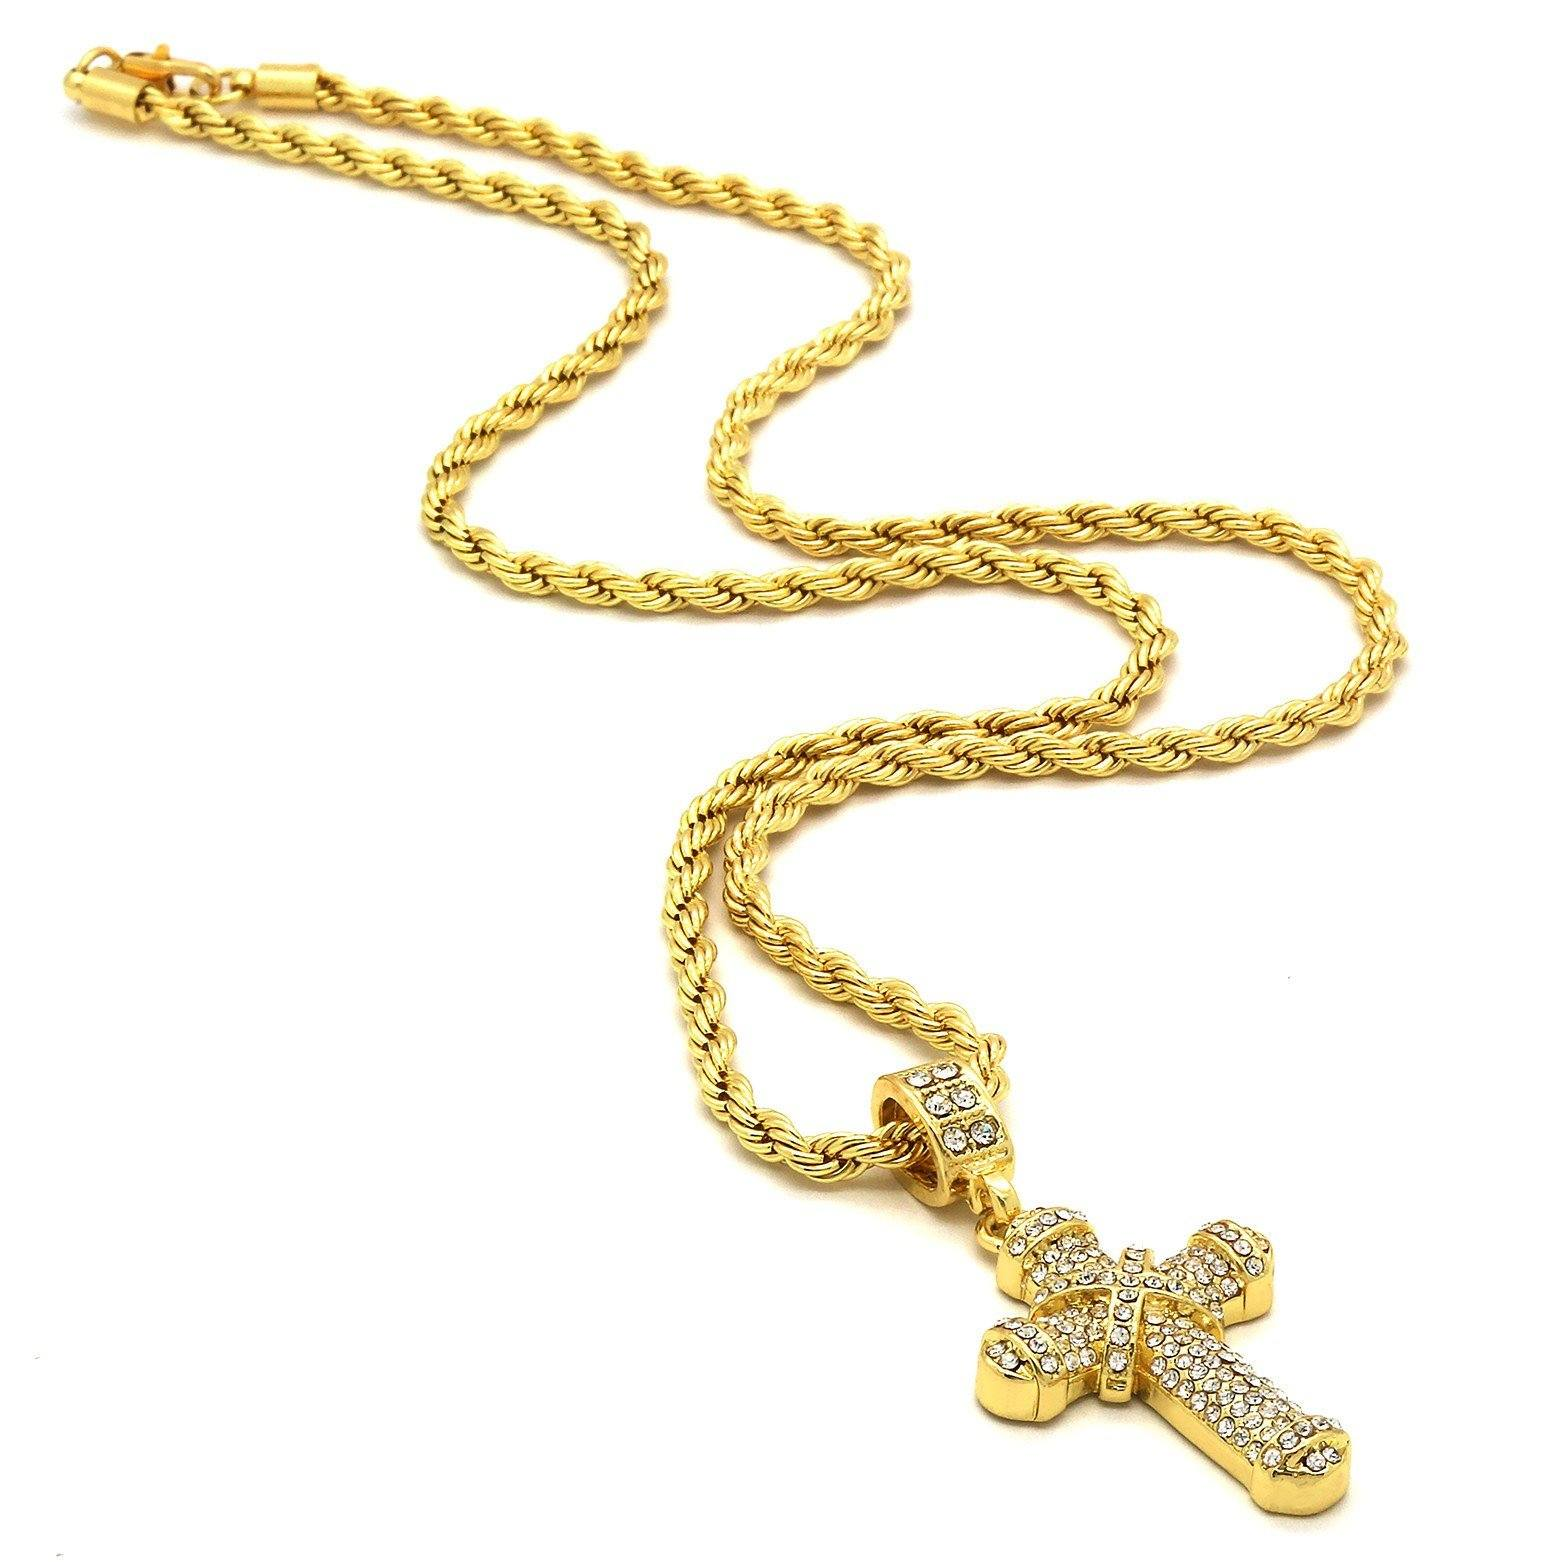 X CROSS PENDANT WITH GOLD ROPE CHAIN